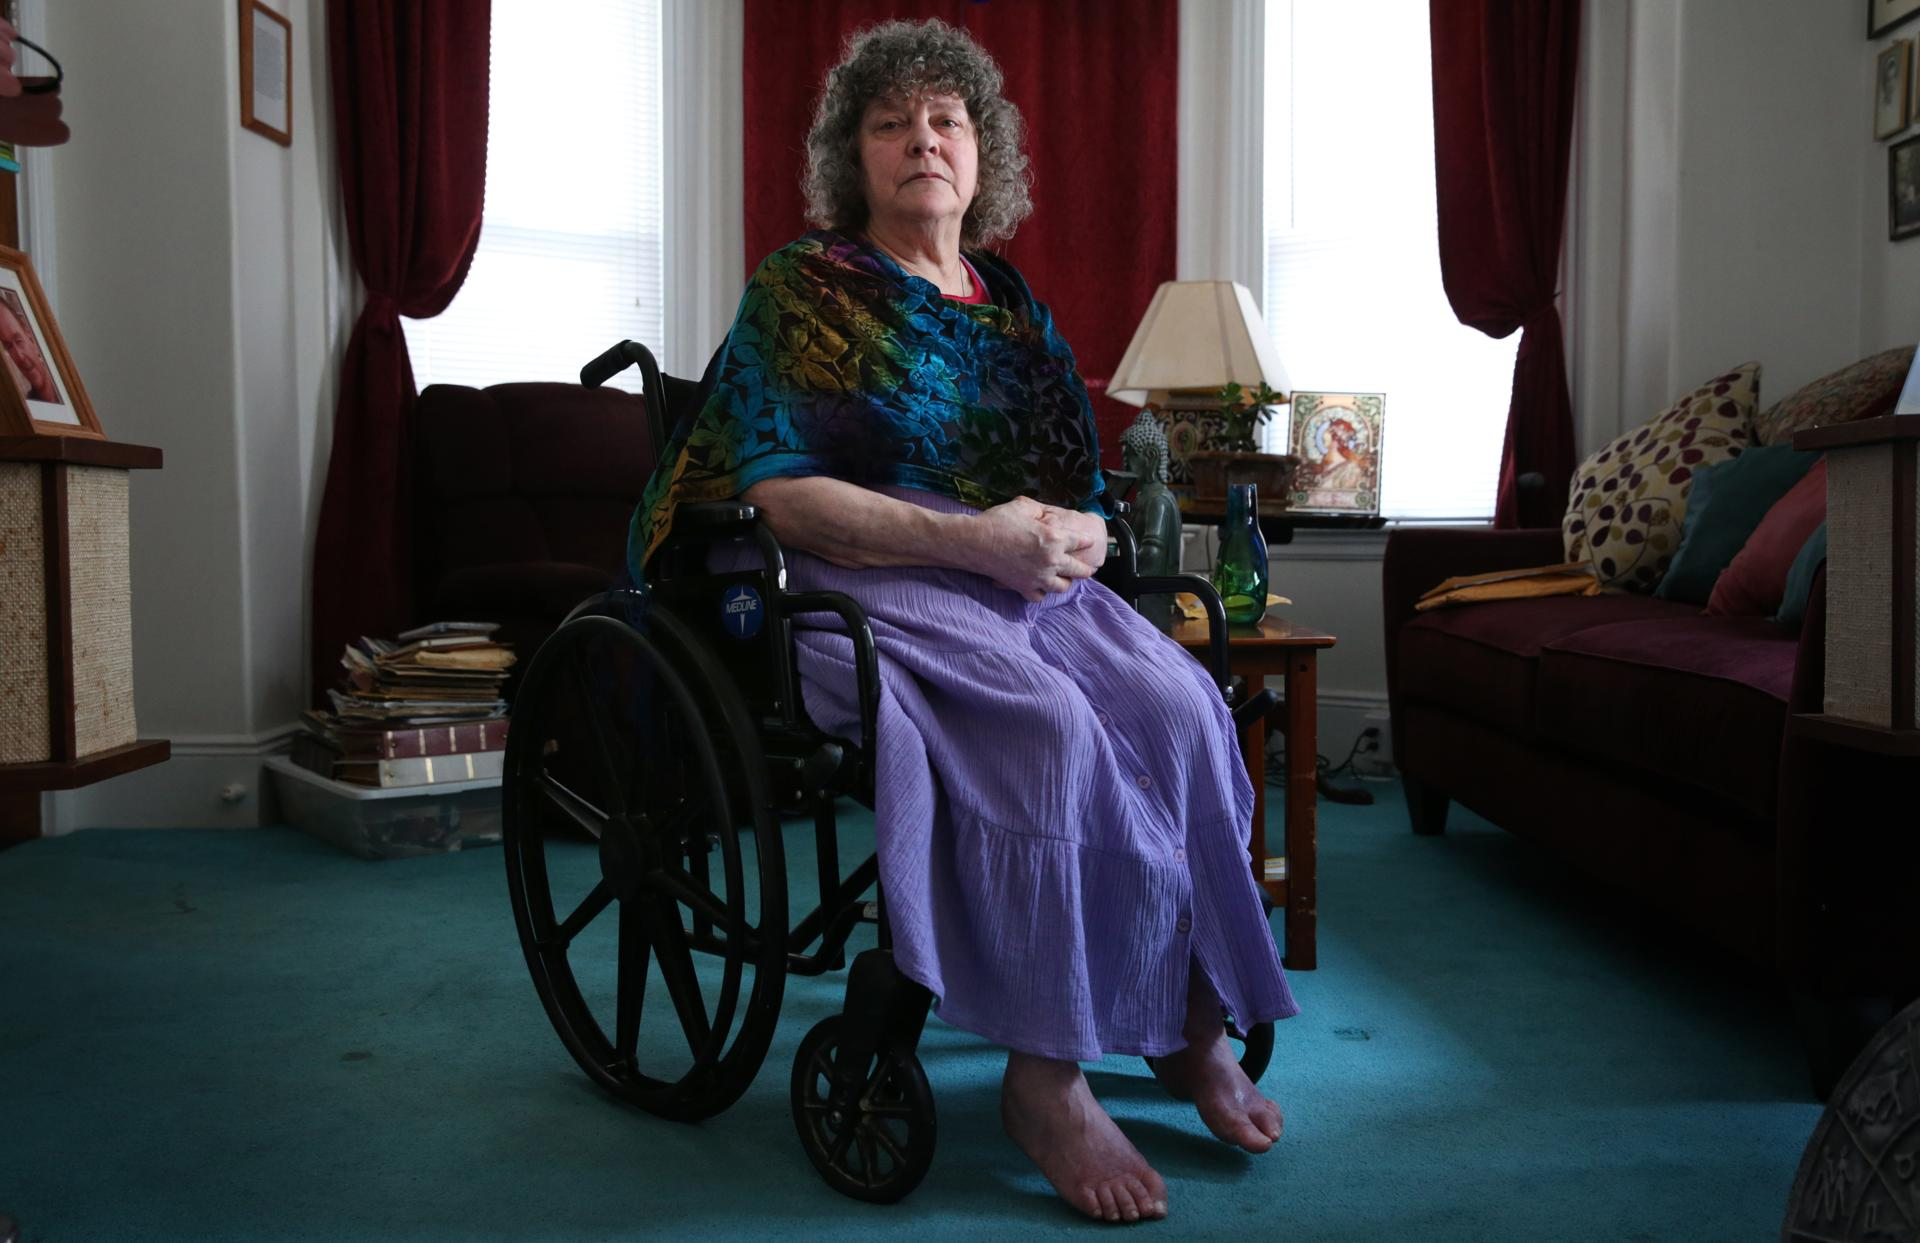 Deborah Lesco estimates she lost more than $20,000 in bank withdrawals and unauthorized credit card charges over a four-month period in 2016 after hiring a home health aide.